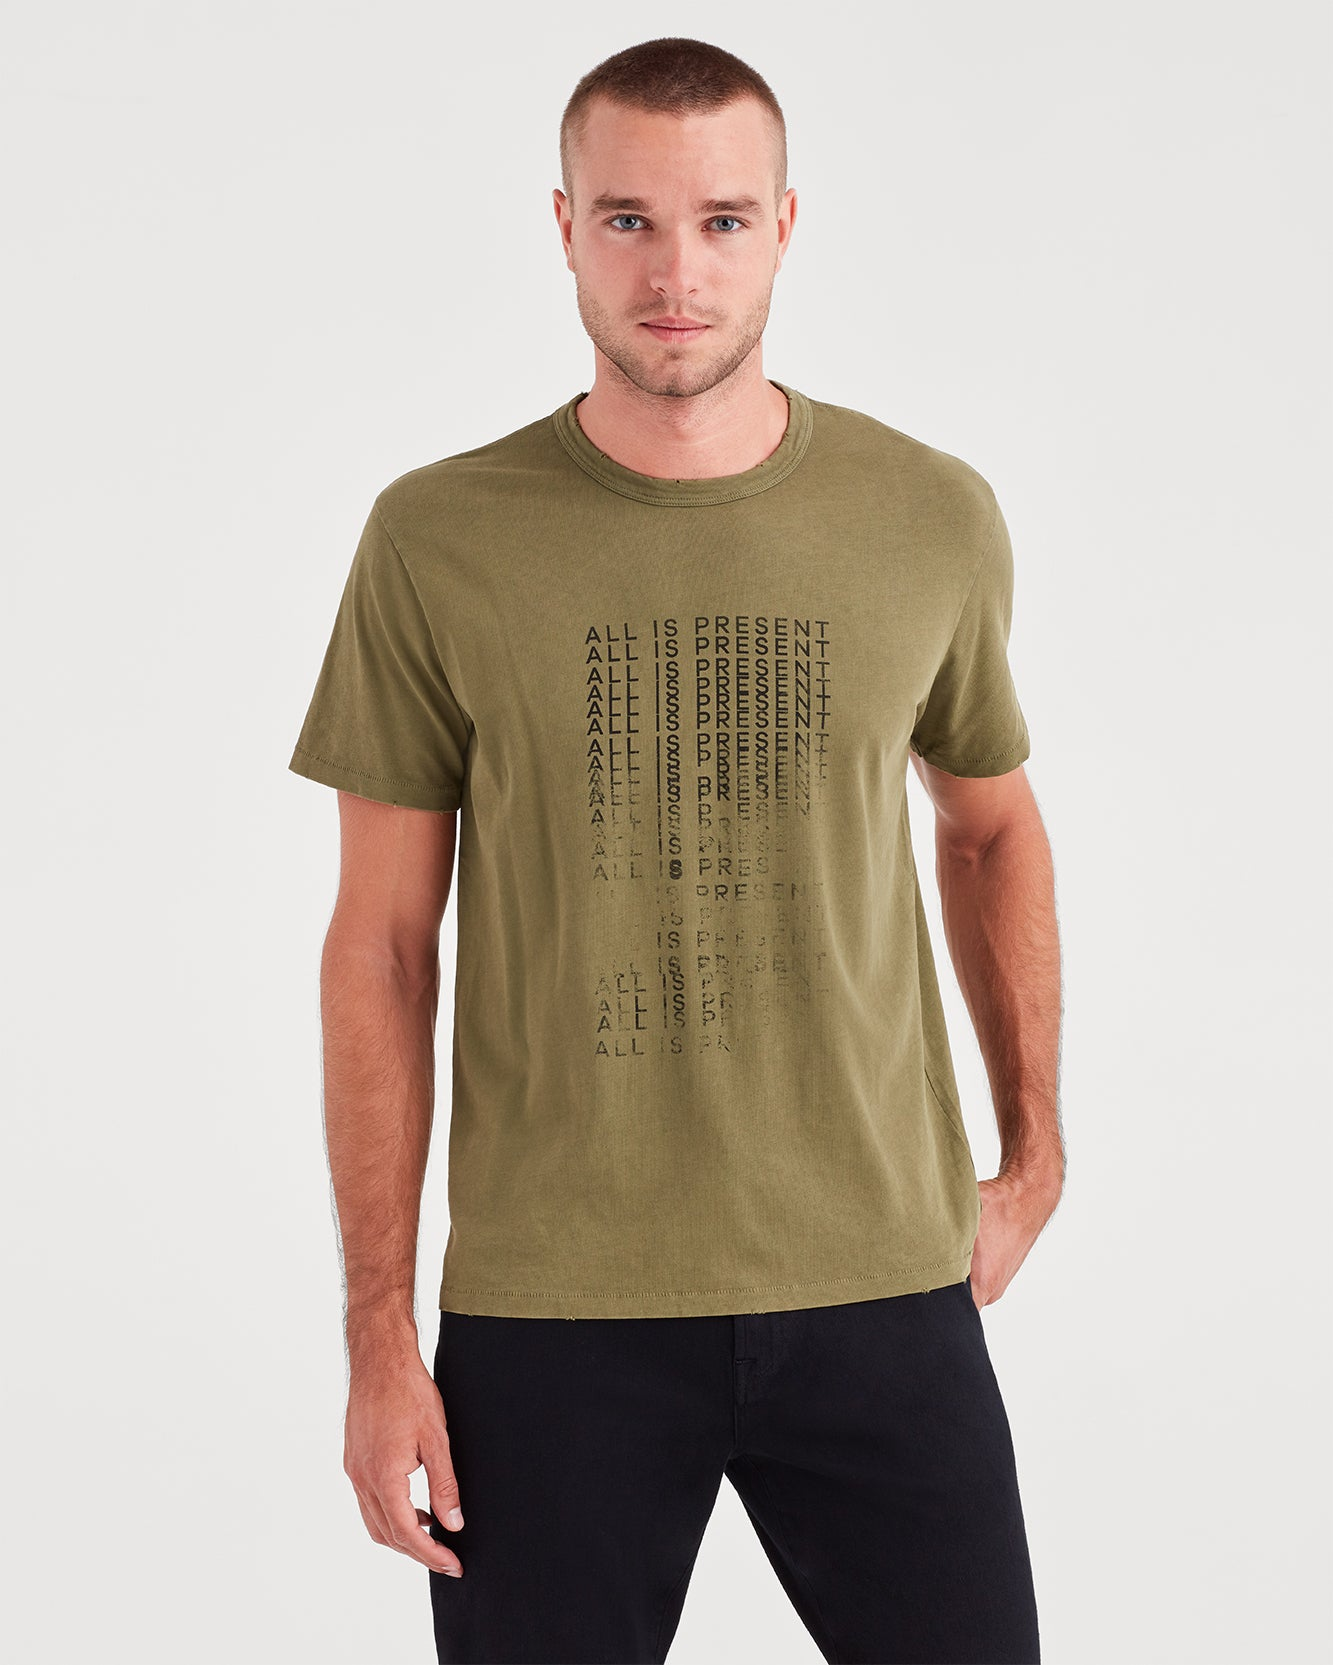 Image of Short Sleeve All Is Present Tee in Military Olive